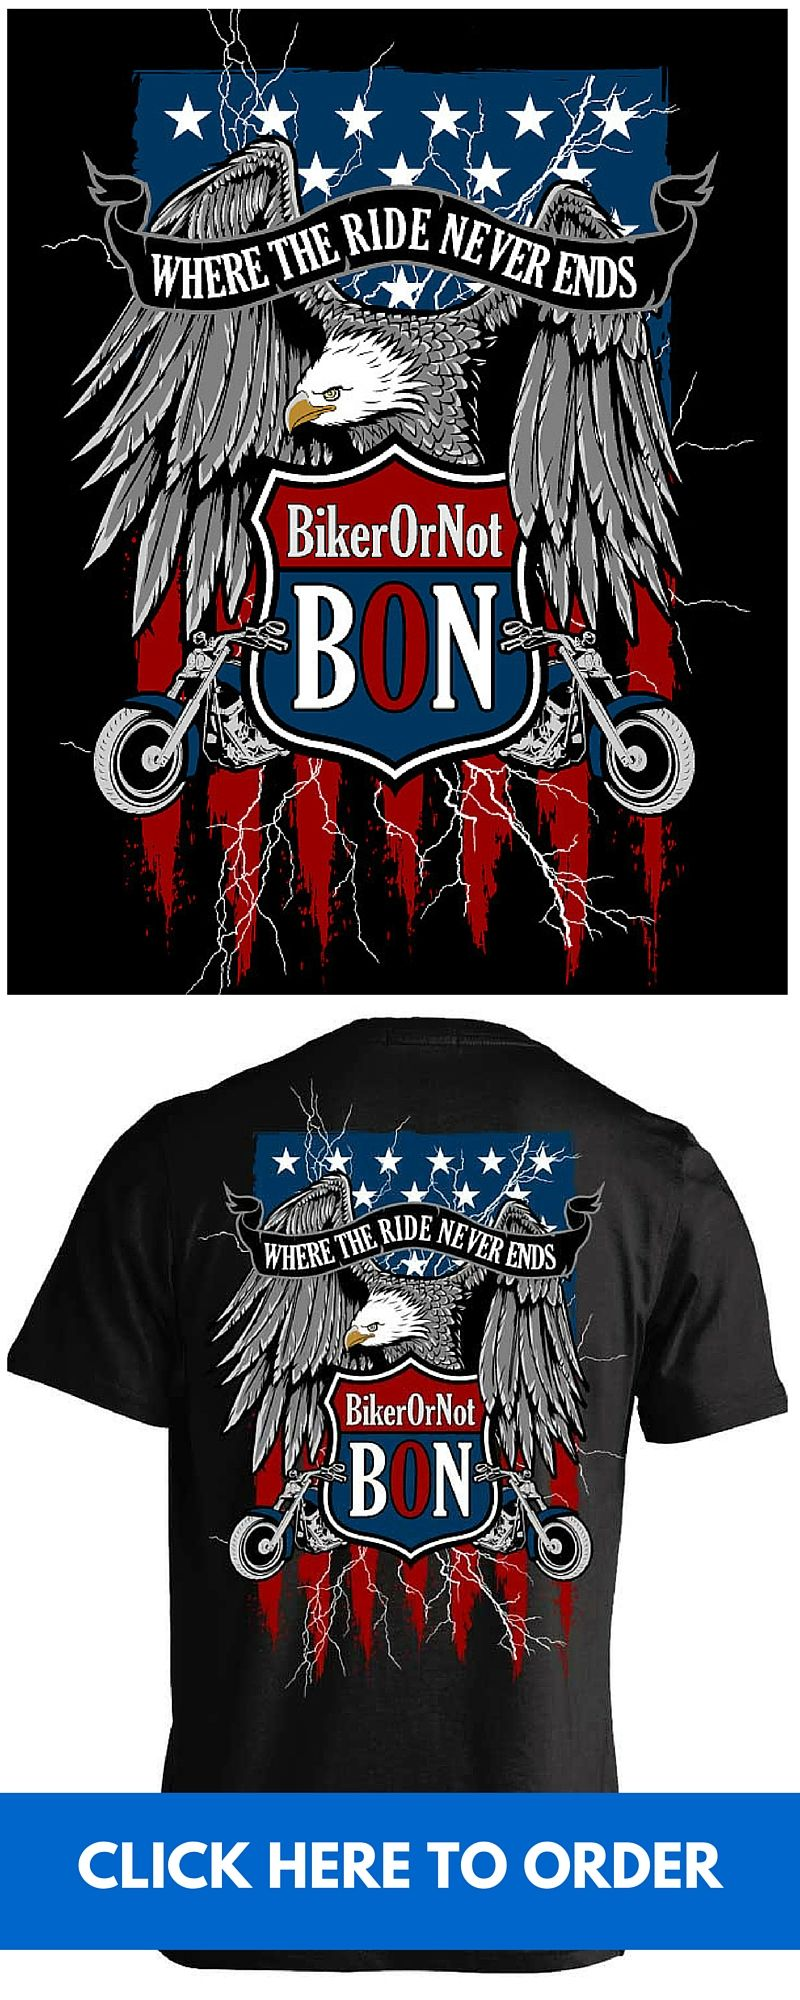 9d96481985e0 BikerOrNot T-shirts - The best way to find other BON members at motorcycle  events